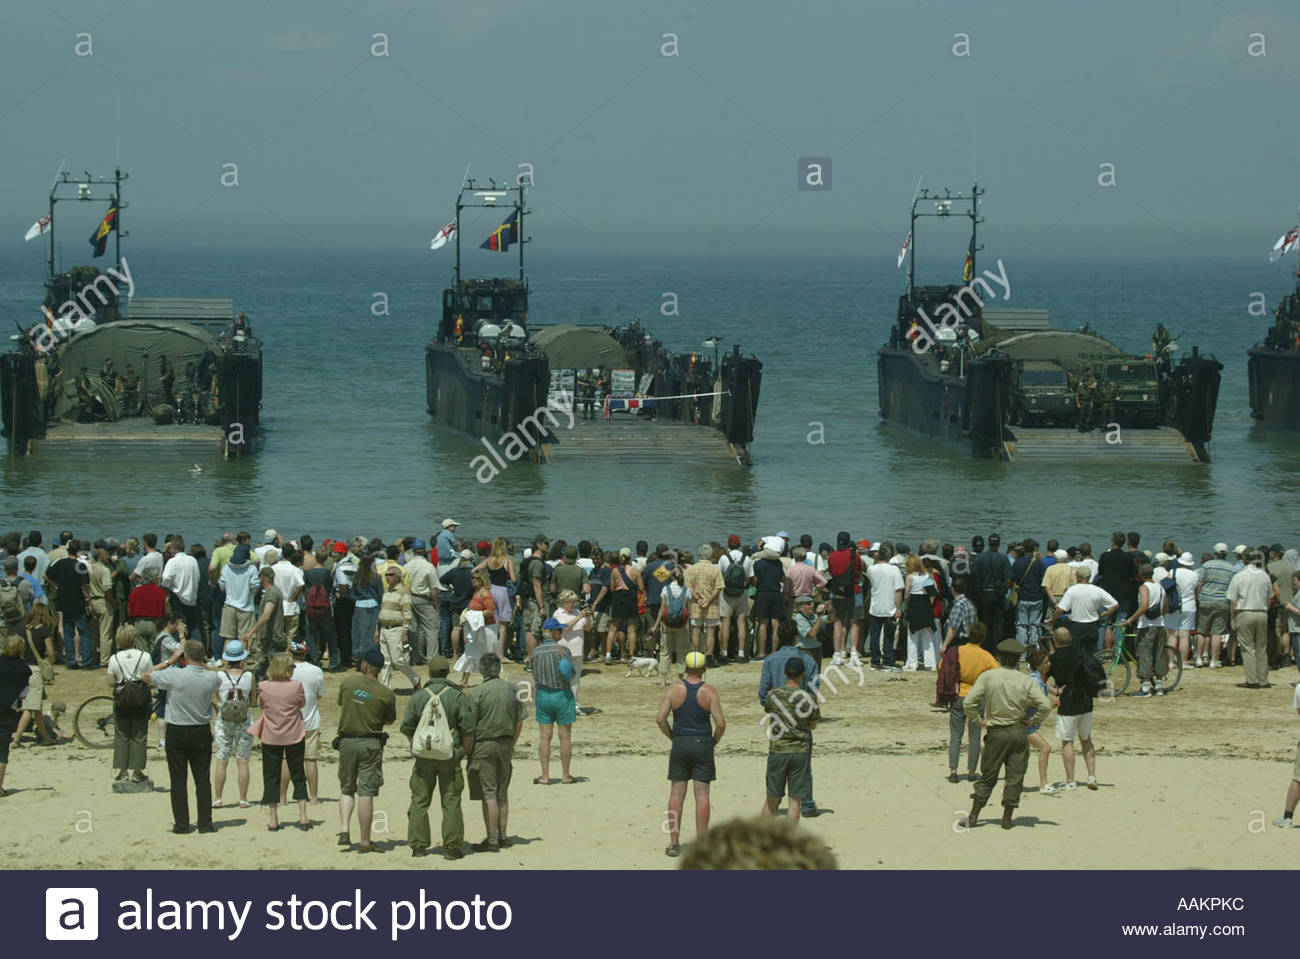 events-to-mark-the-60th-anniversary-of-the-d-day-landings-in-normandy-AAKPKC.jpg